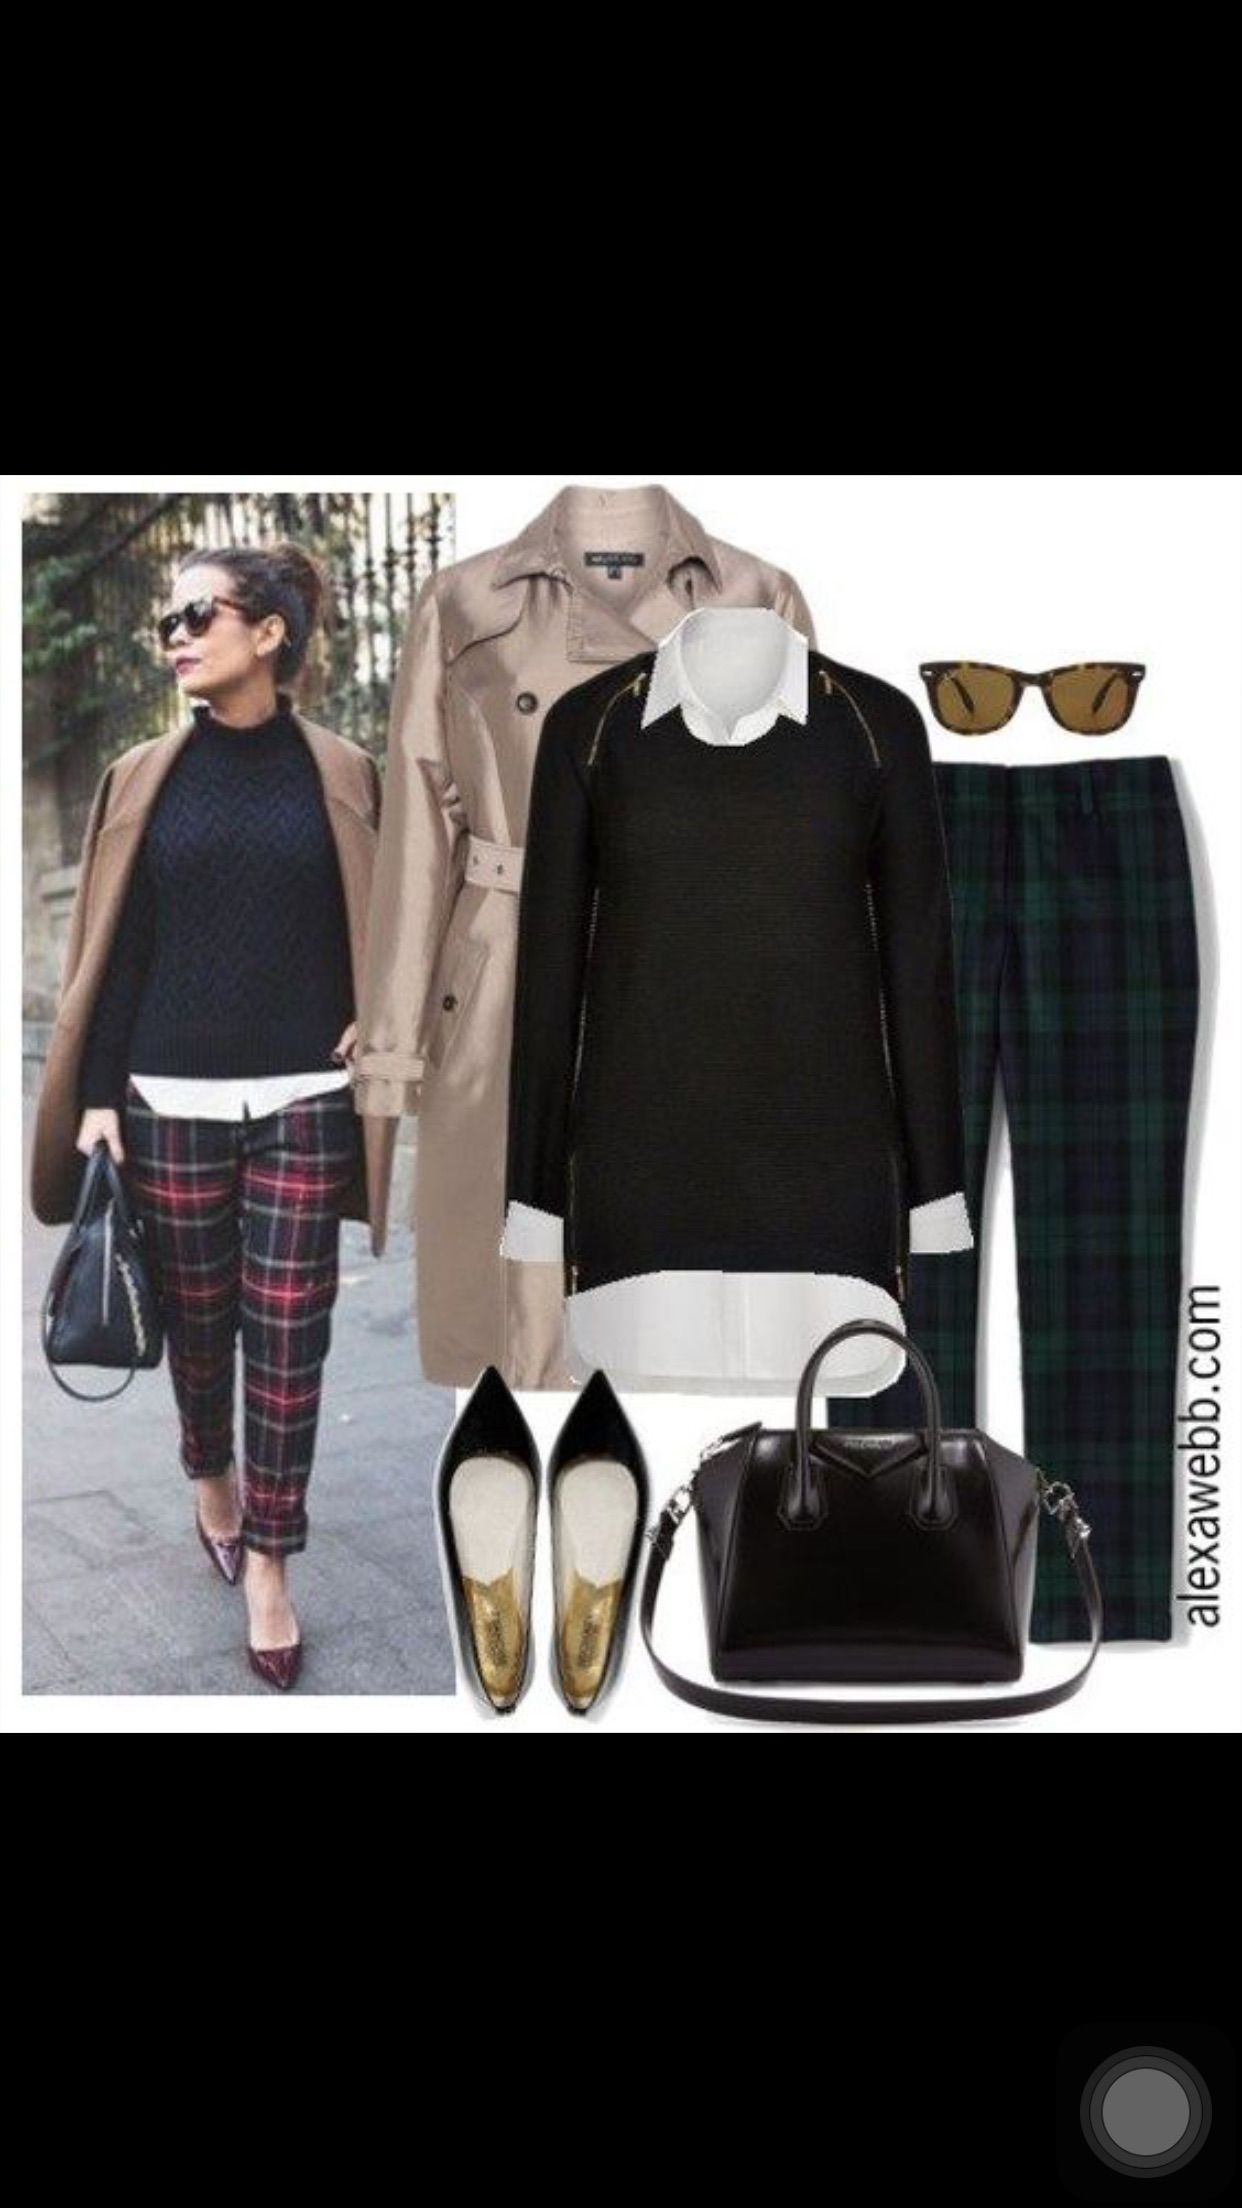 new style 8e9cc 10f74 Kendall Jenner leaving the Miu Miu Showroom in Paris, March 7, 2016 WOMEN S  ATHLETIC   FASHION SNEAKERS http   amzn.to 2kR9jl3. Pin lisääjältä ...